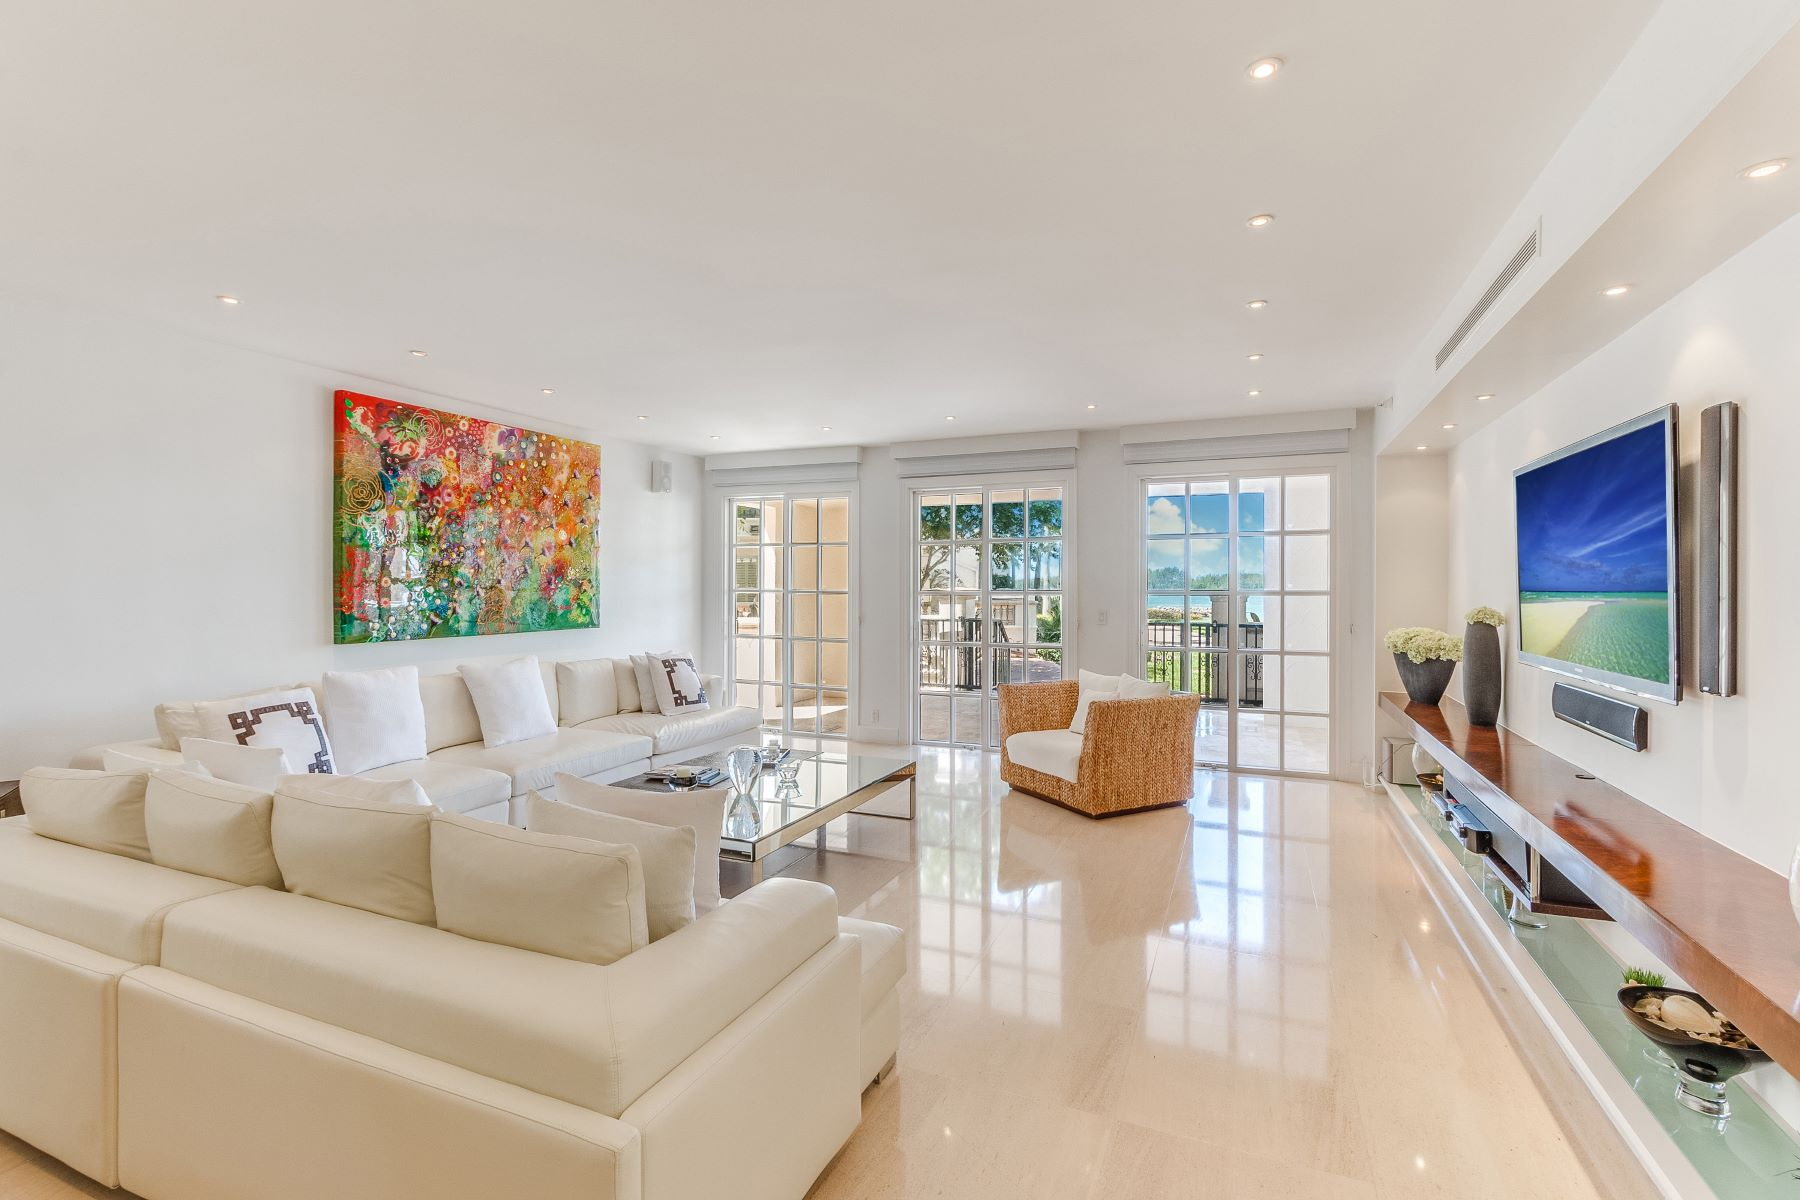 Condomínio para Venda às 2111 Fisher Island Dr #2111 2111 Fisher Island Dr 2111 Miami Beach, Florida, 33109 Estados Unidos